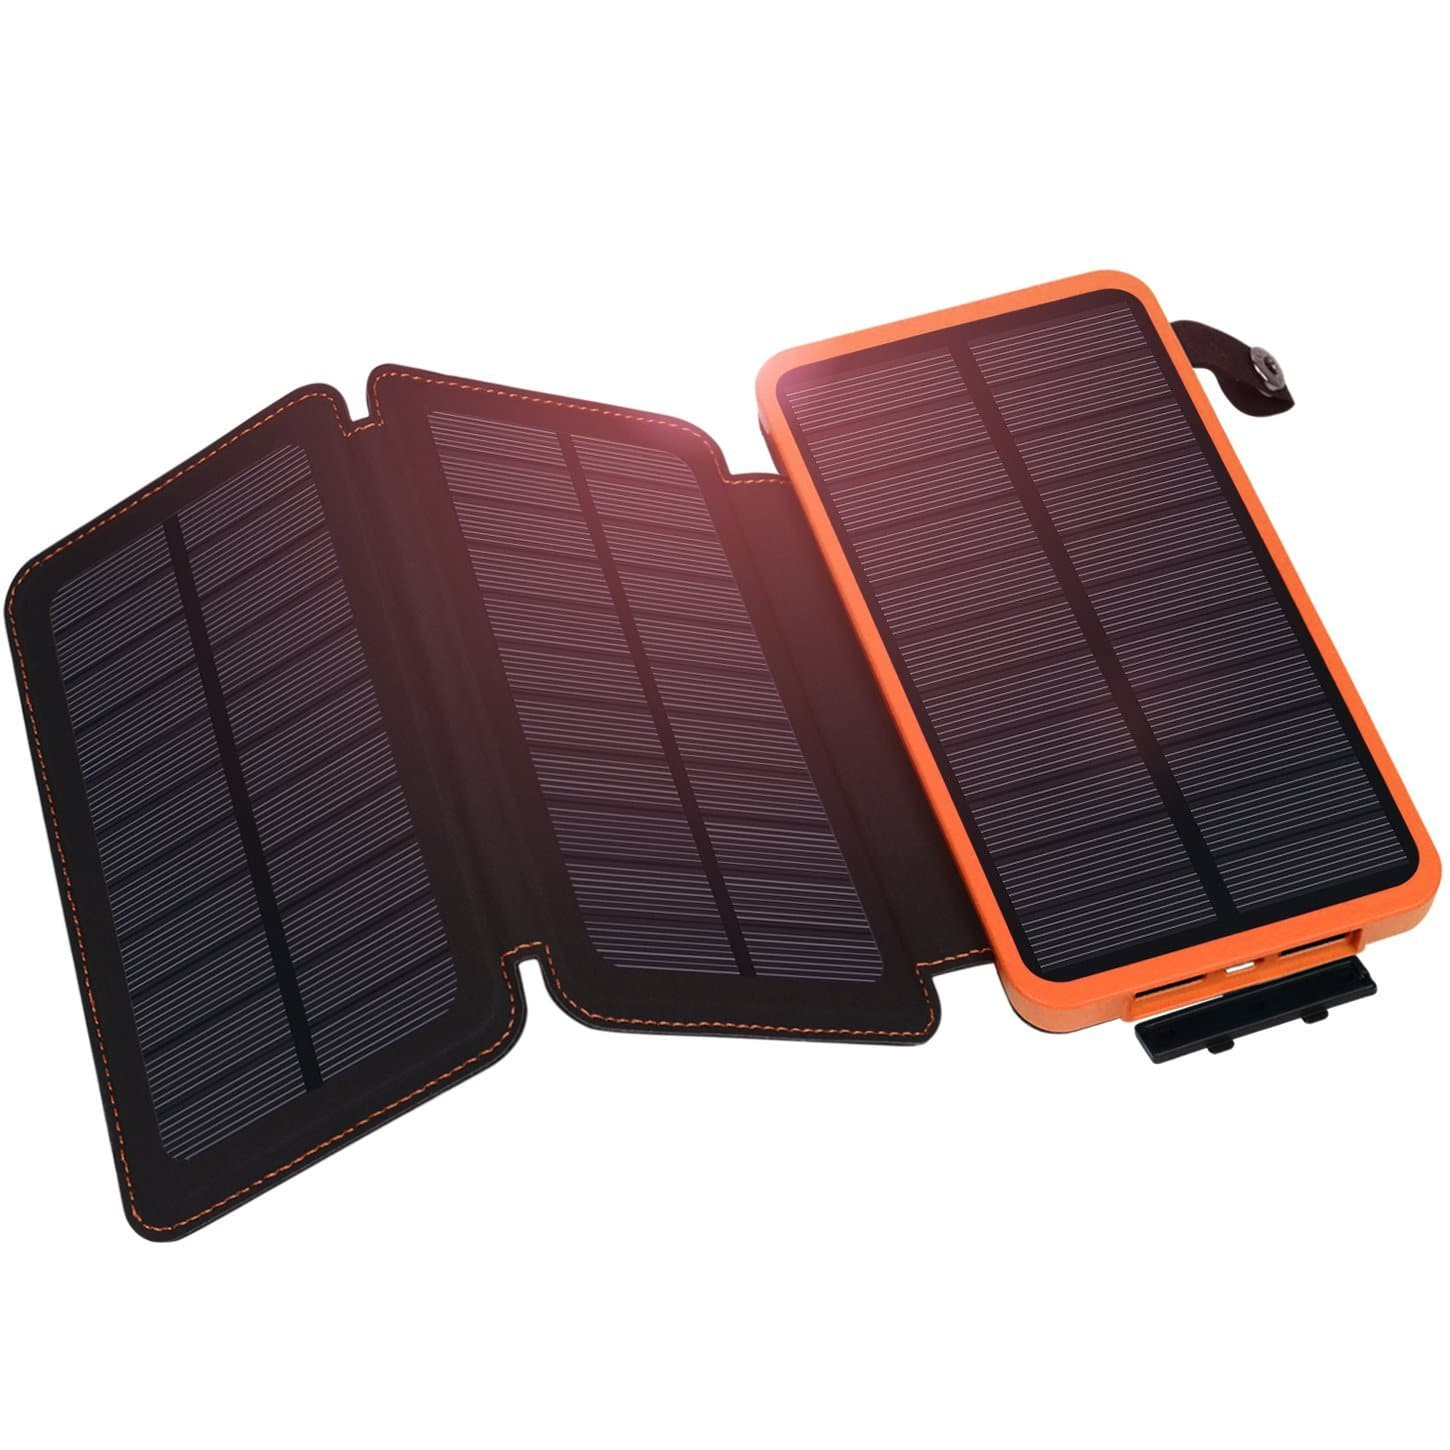 Hiluckey Waterproof Solar Power Bank